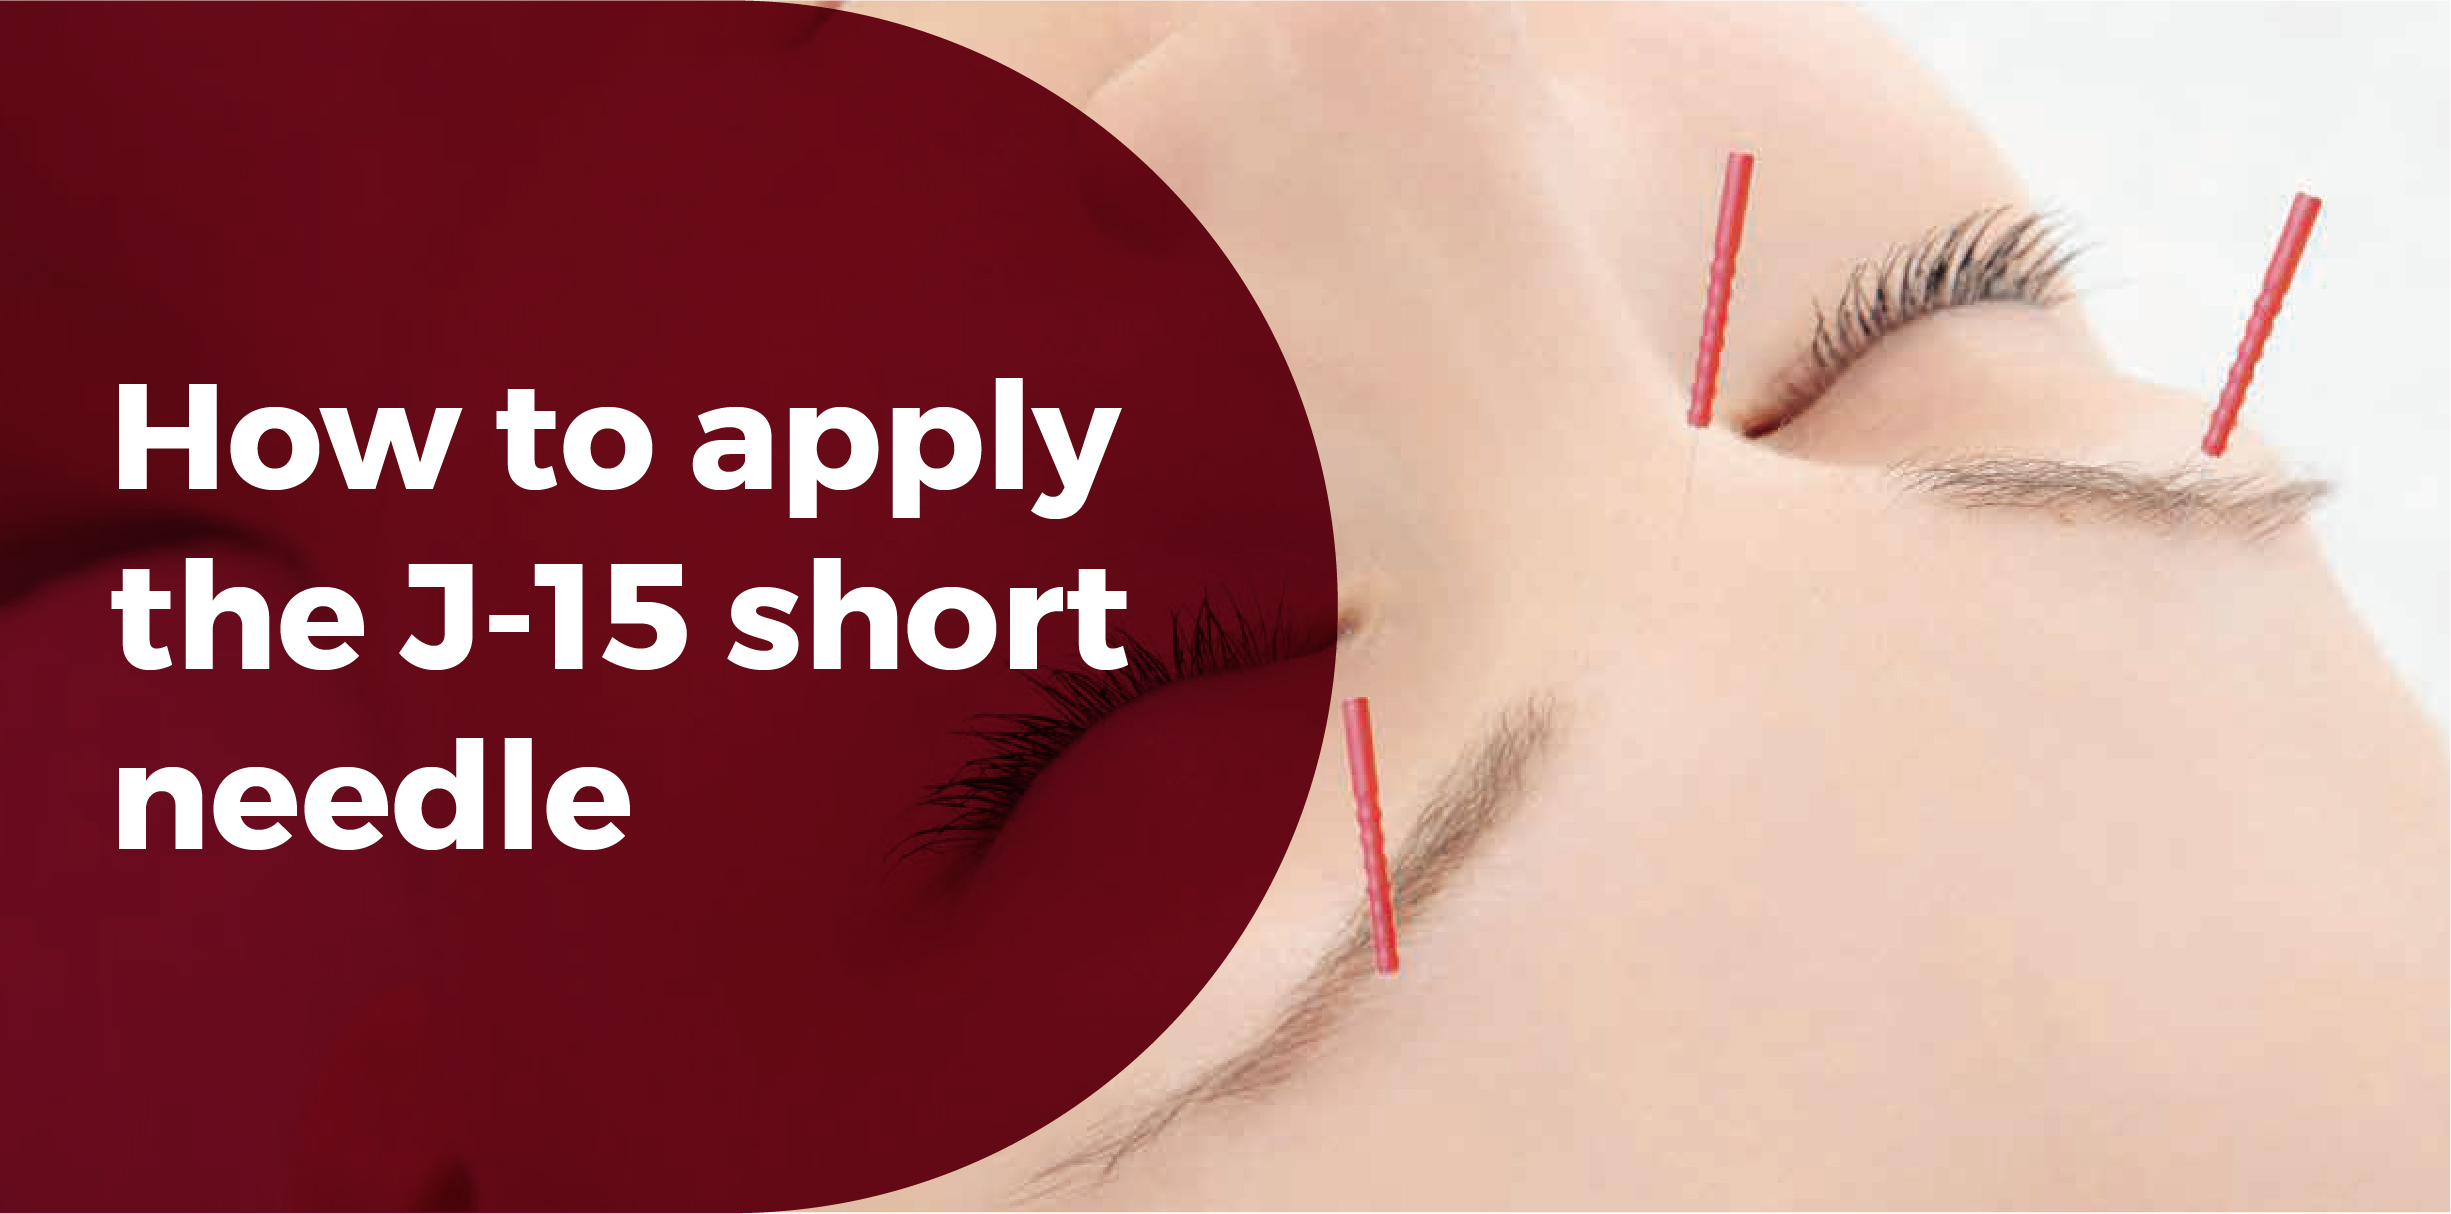 how to apply the J-15 short needle